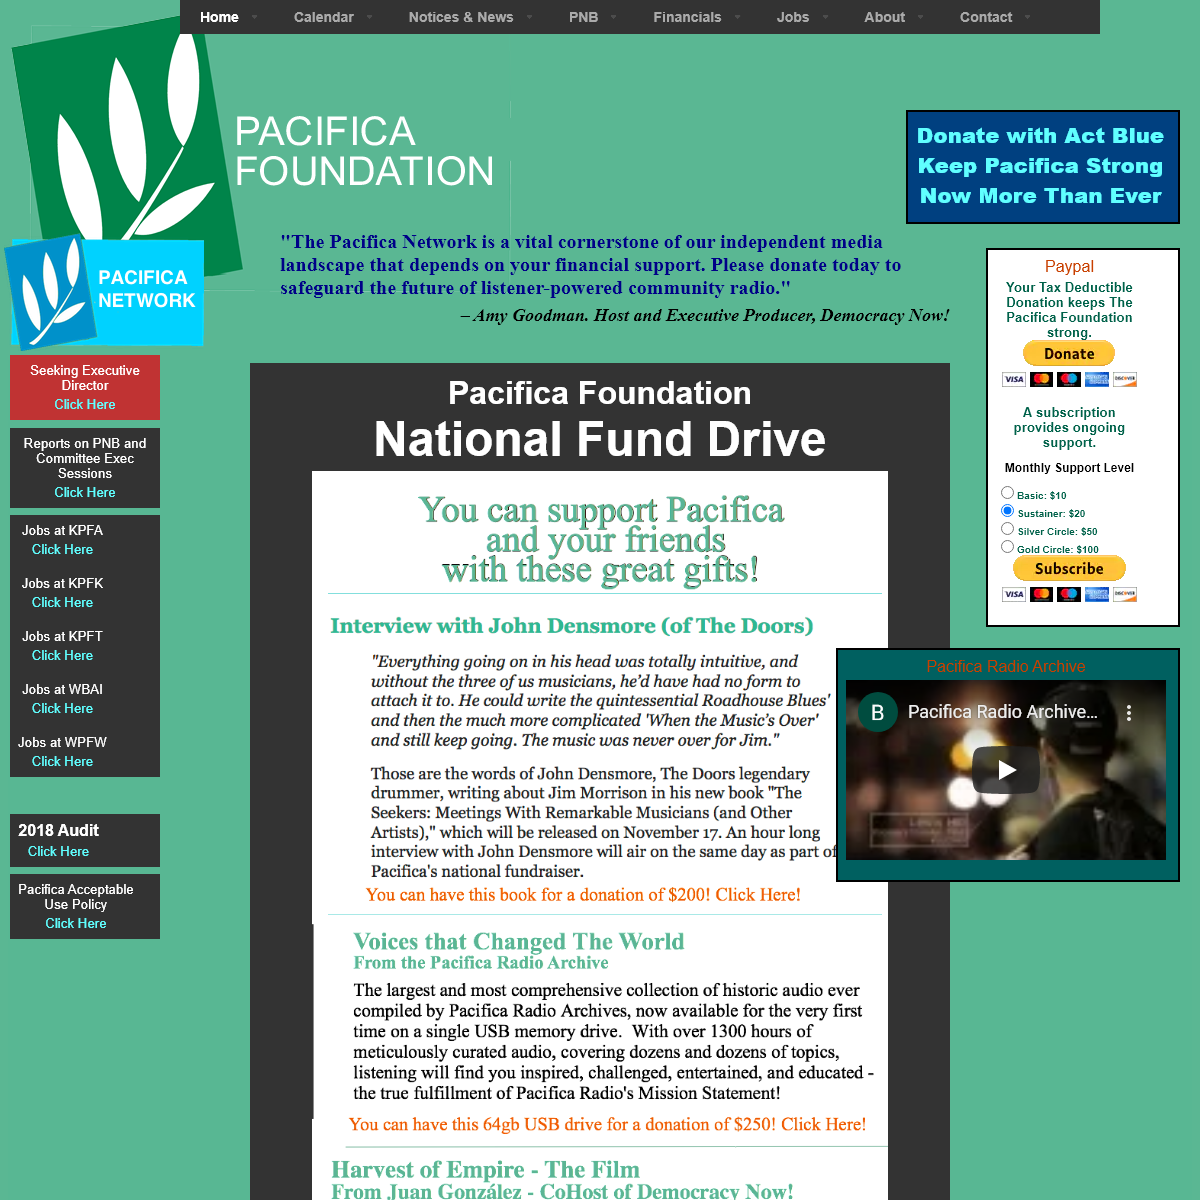 The Pacifica Foundation